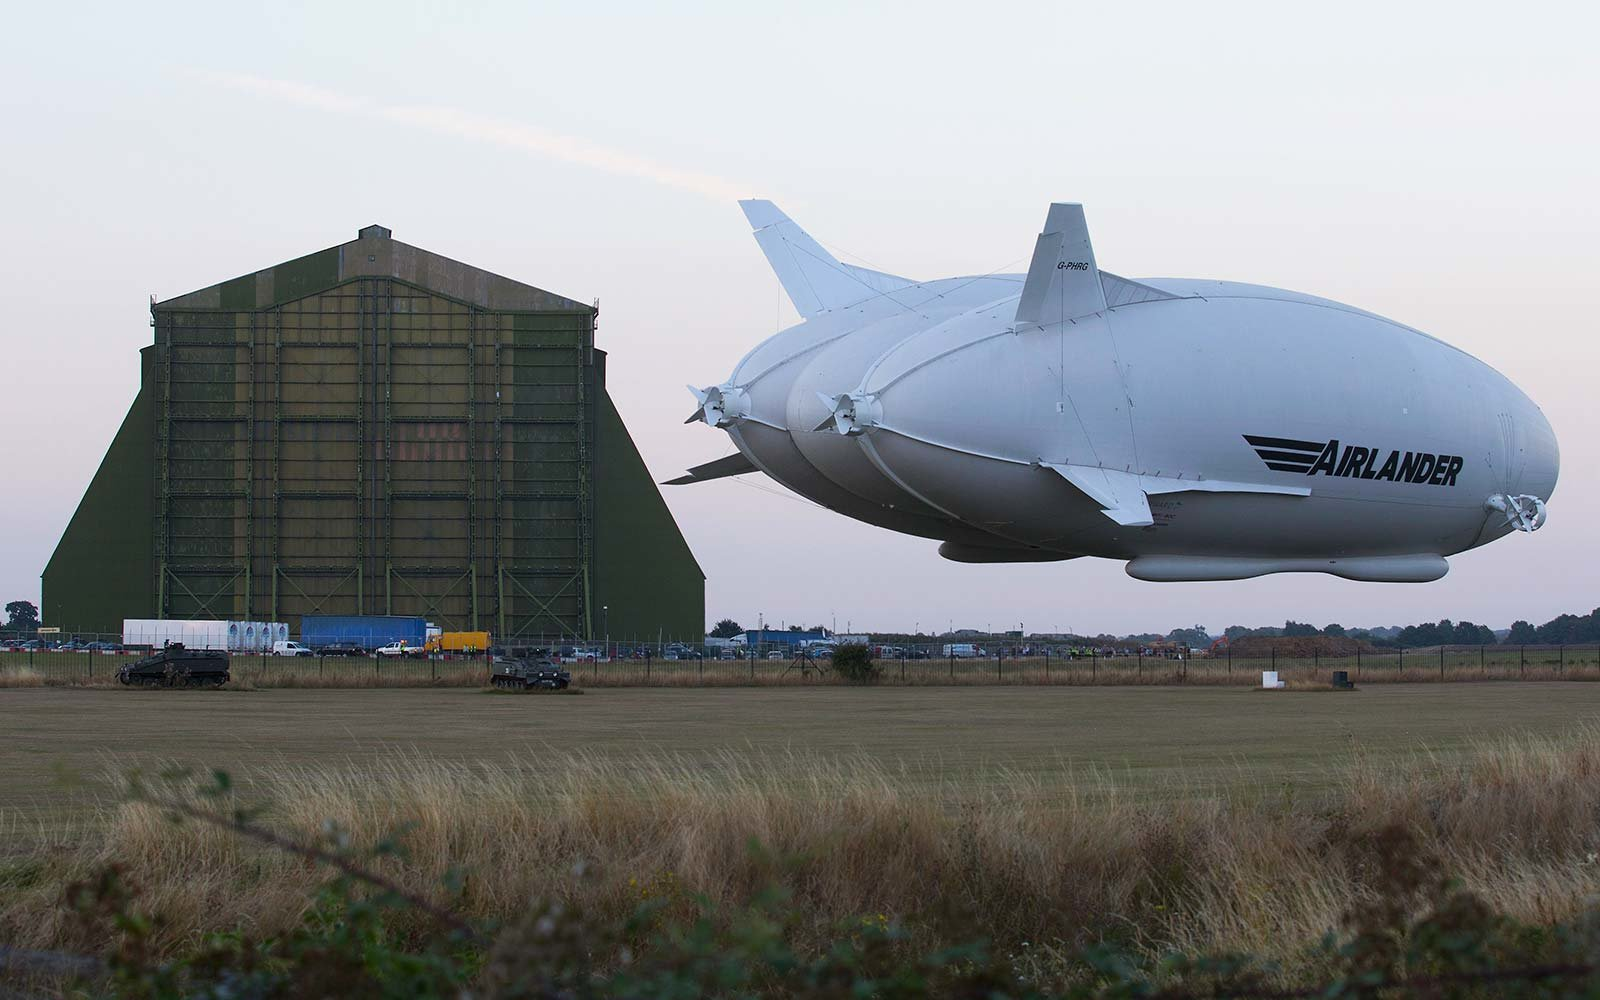 Airlander 10 World's Largest Aircraft Flight Airplane